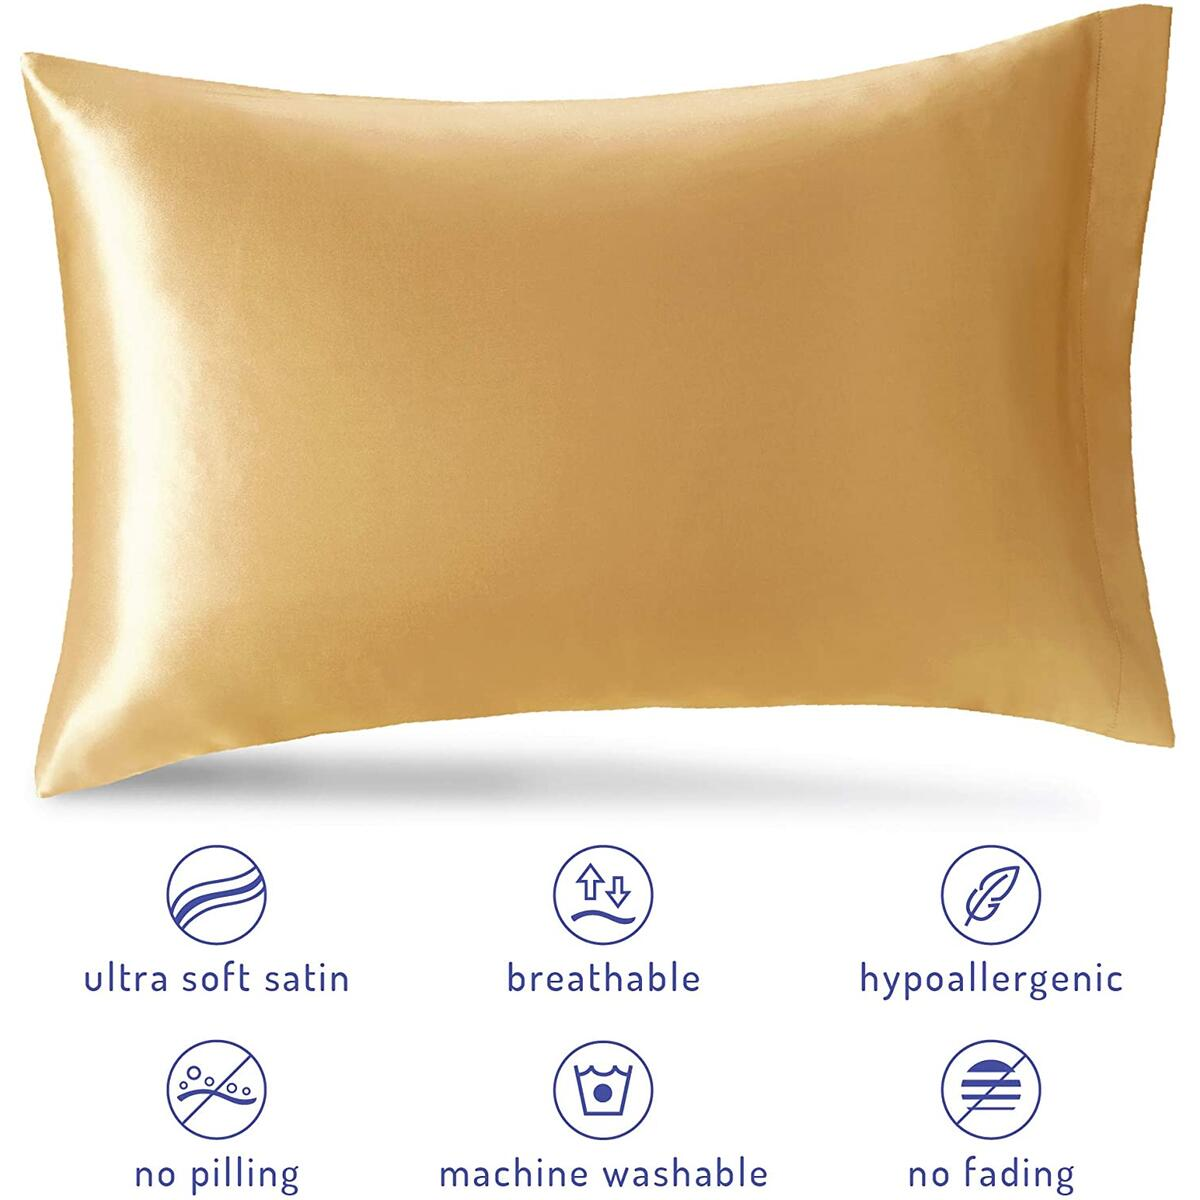 Satin Pillowcase King for Hair and Skin | King Size Pillows Cases Set of 2, Gold, 20 x 40 Inch | Cool Pillow Case Reduce Skin Irritation & Frizzy Hair | Retains Color in Easy Machine Wash & Dry